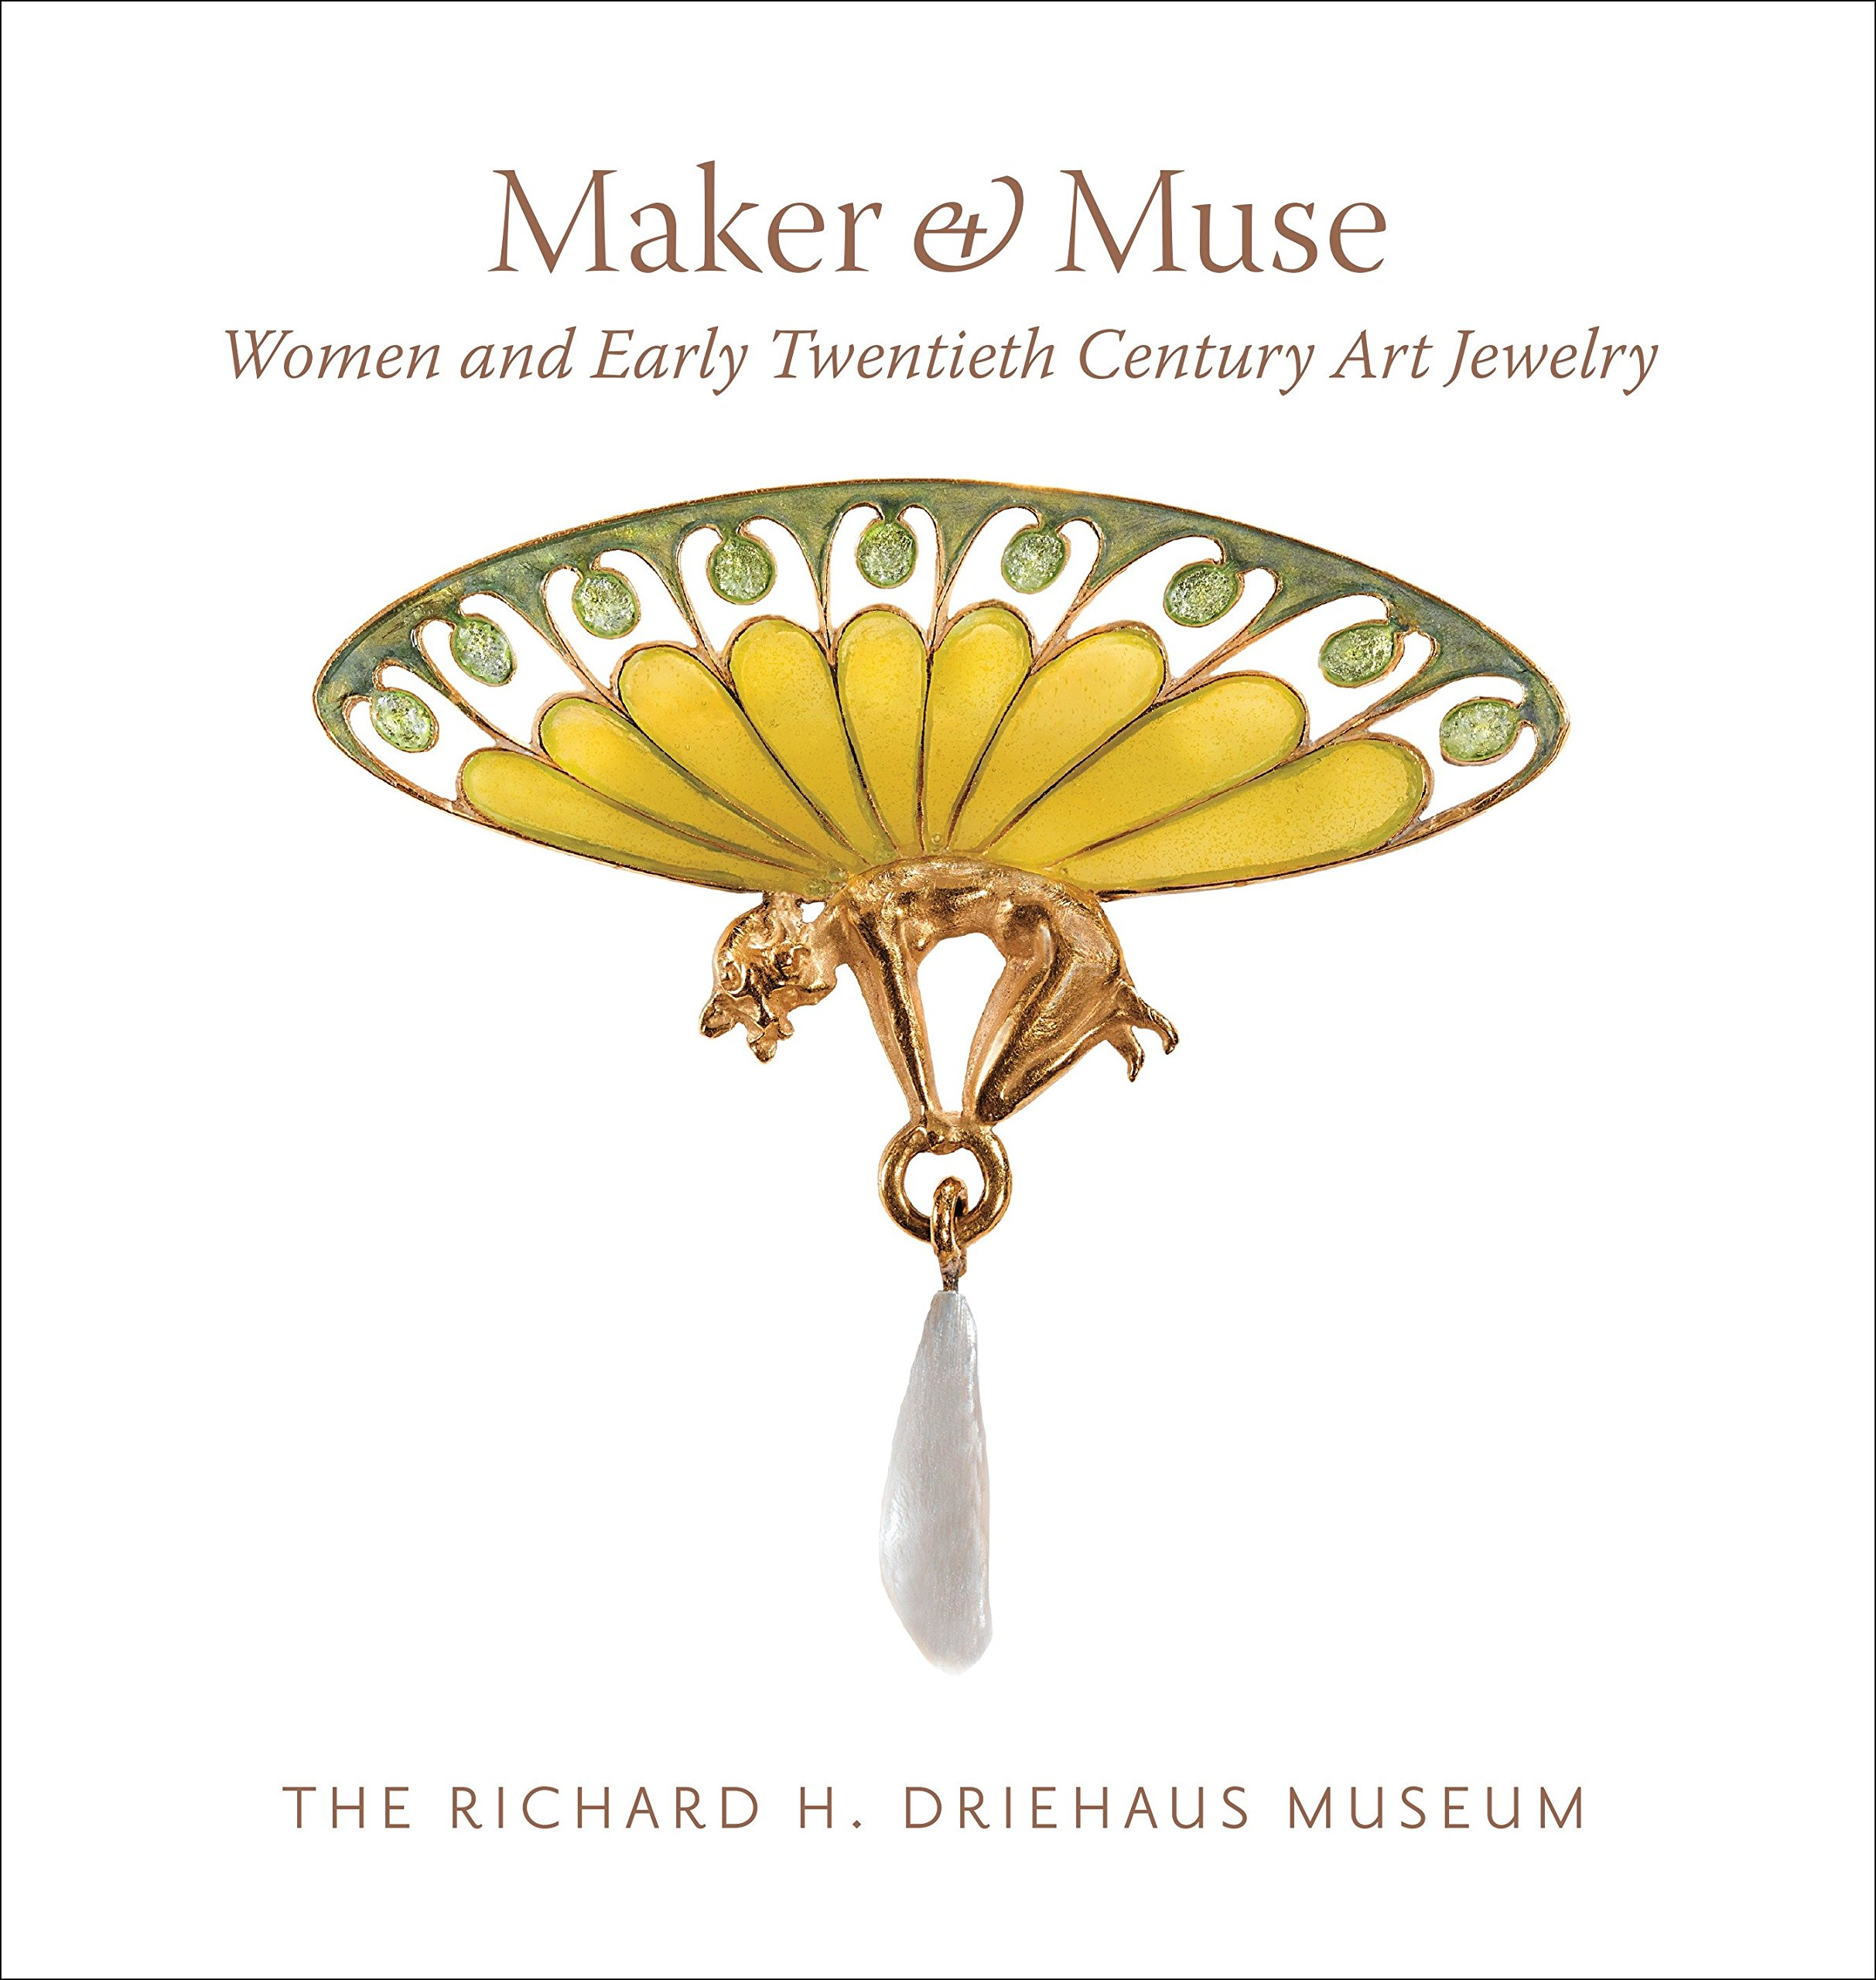 Maker and Muse: Women and Early Twentieth Century Art Jewelry by The Monacelli Press